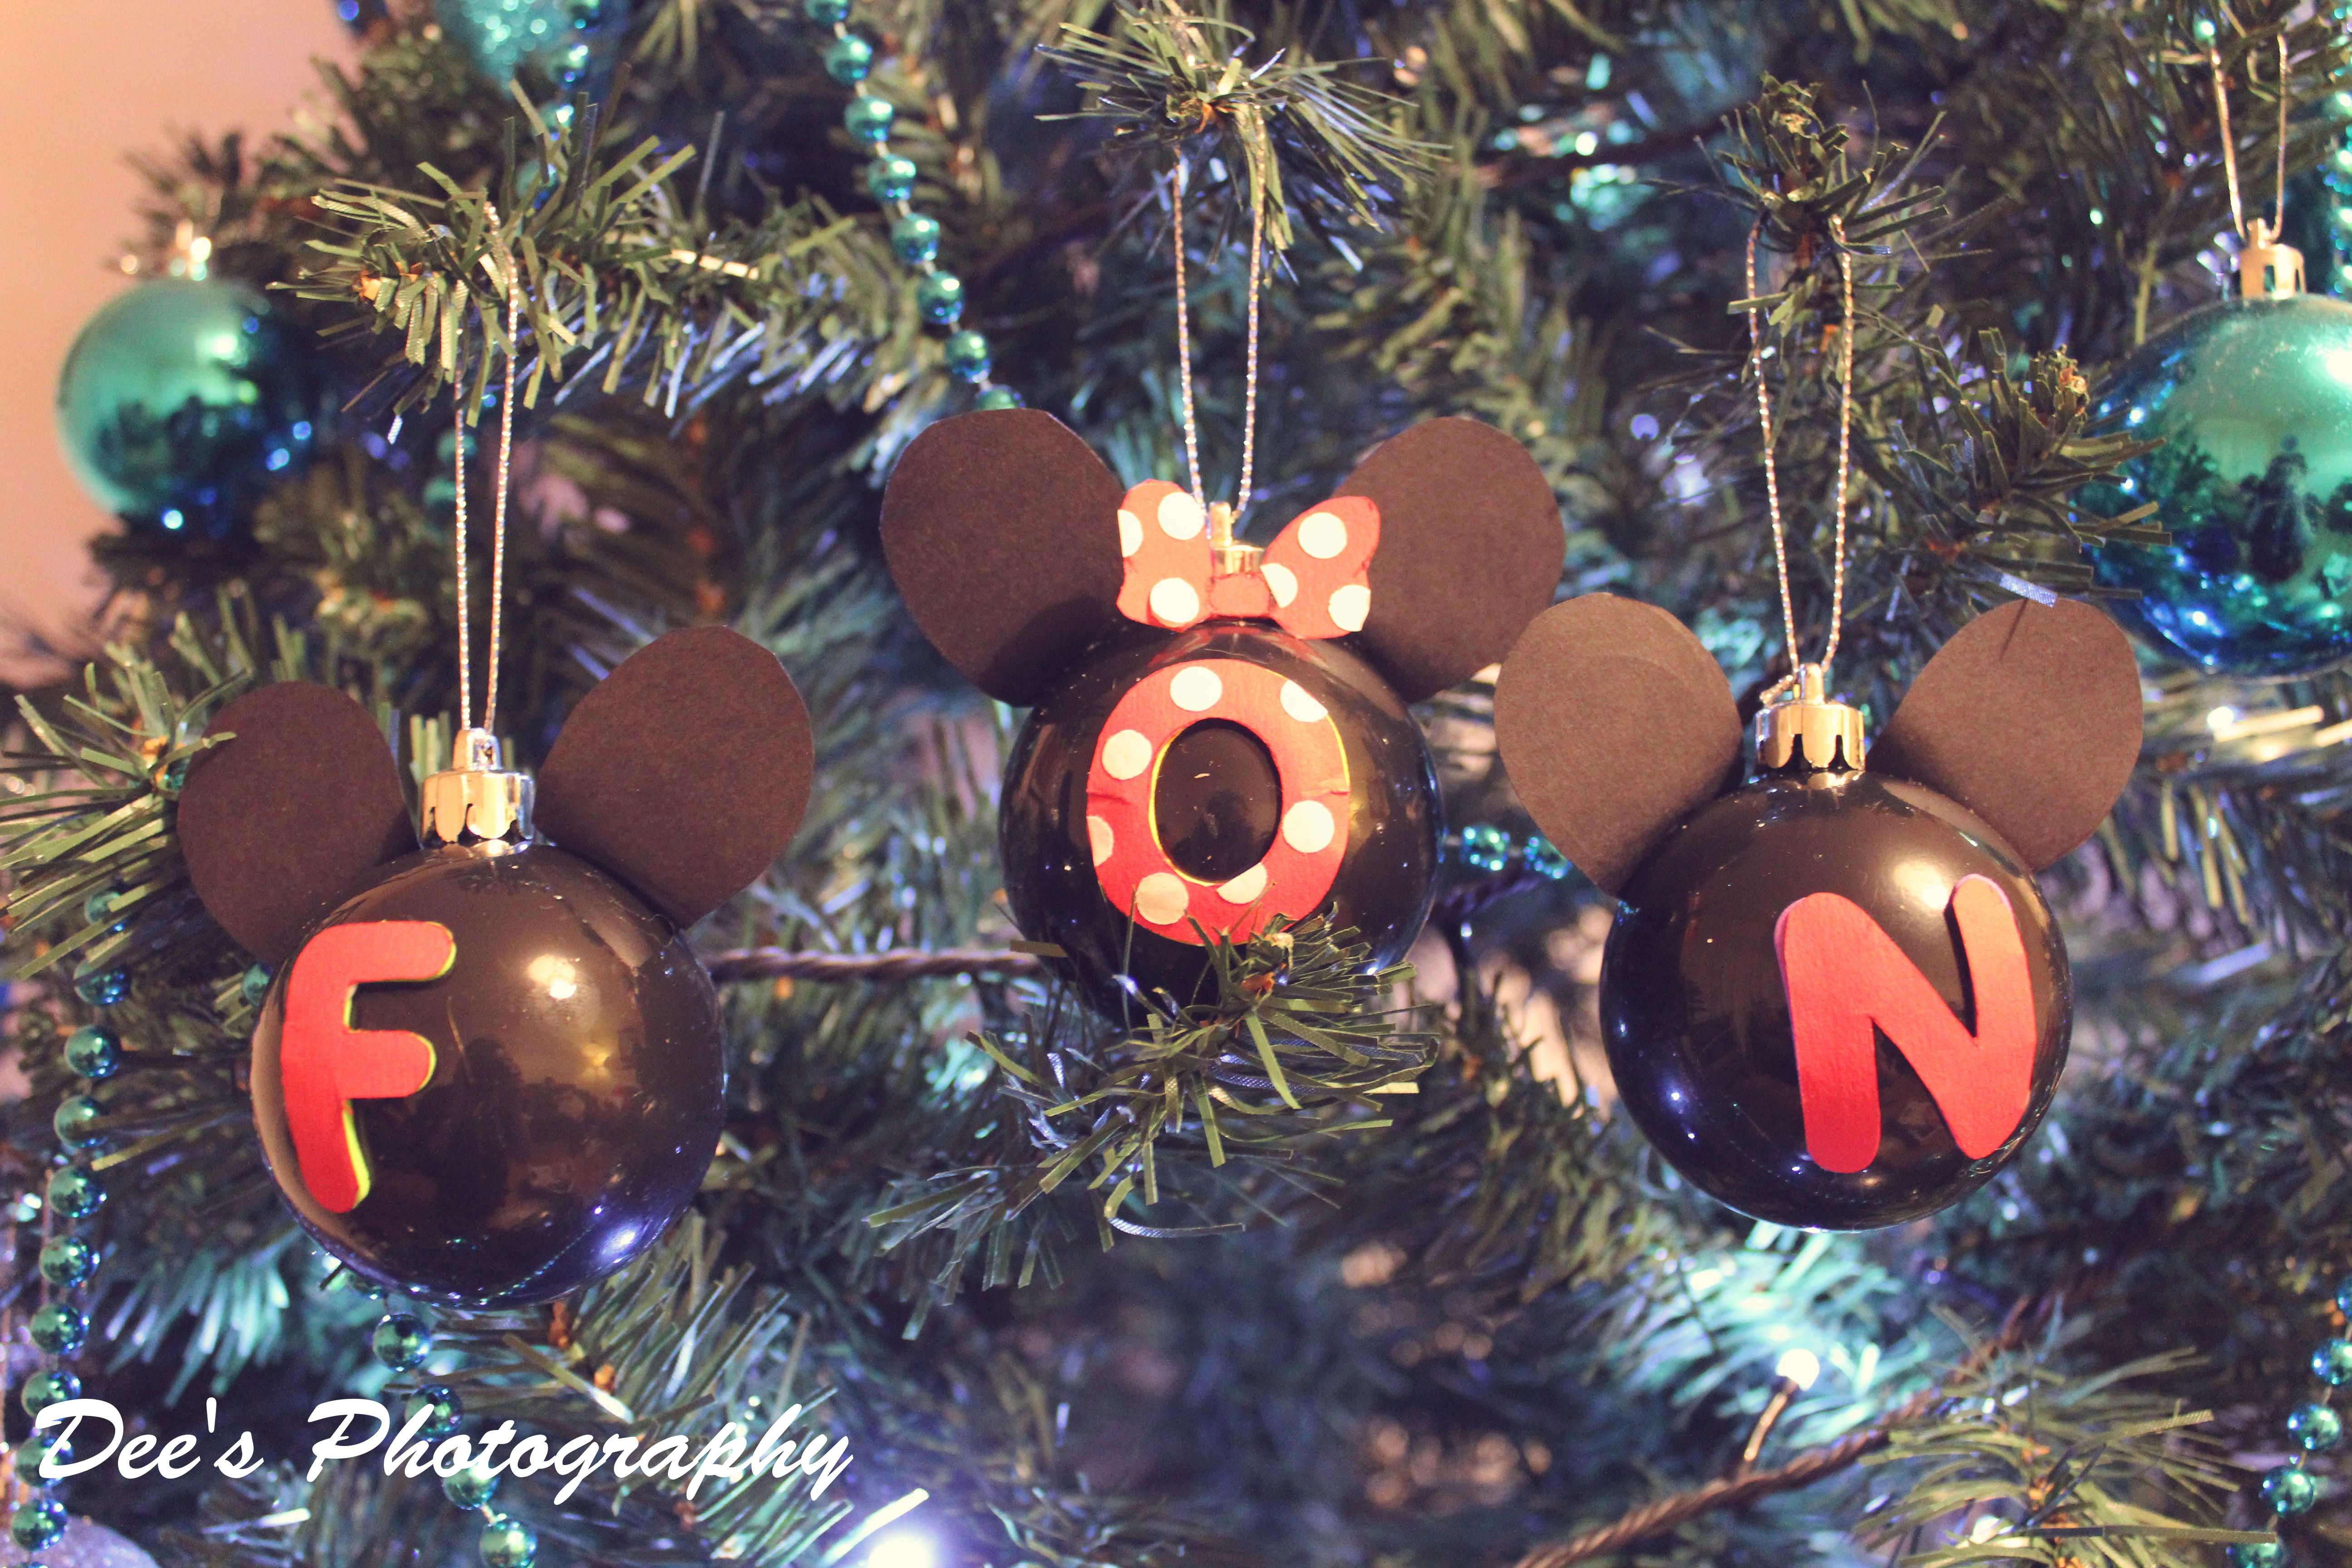 Mickey mouse inspired baubles for christmas follow link for mickey mouse inspired baubles for christmas follow link for instructions https do it yourselfminnie solutioingenieria Choice Image